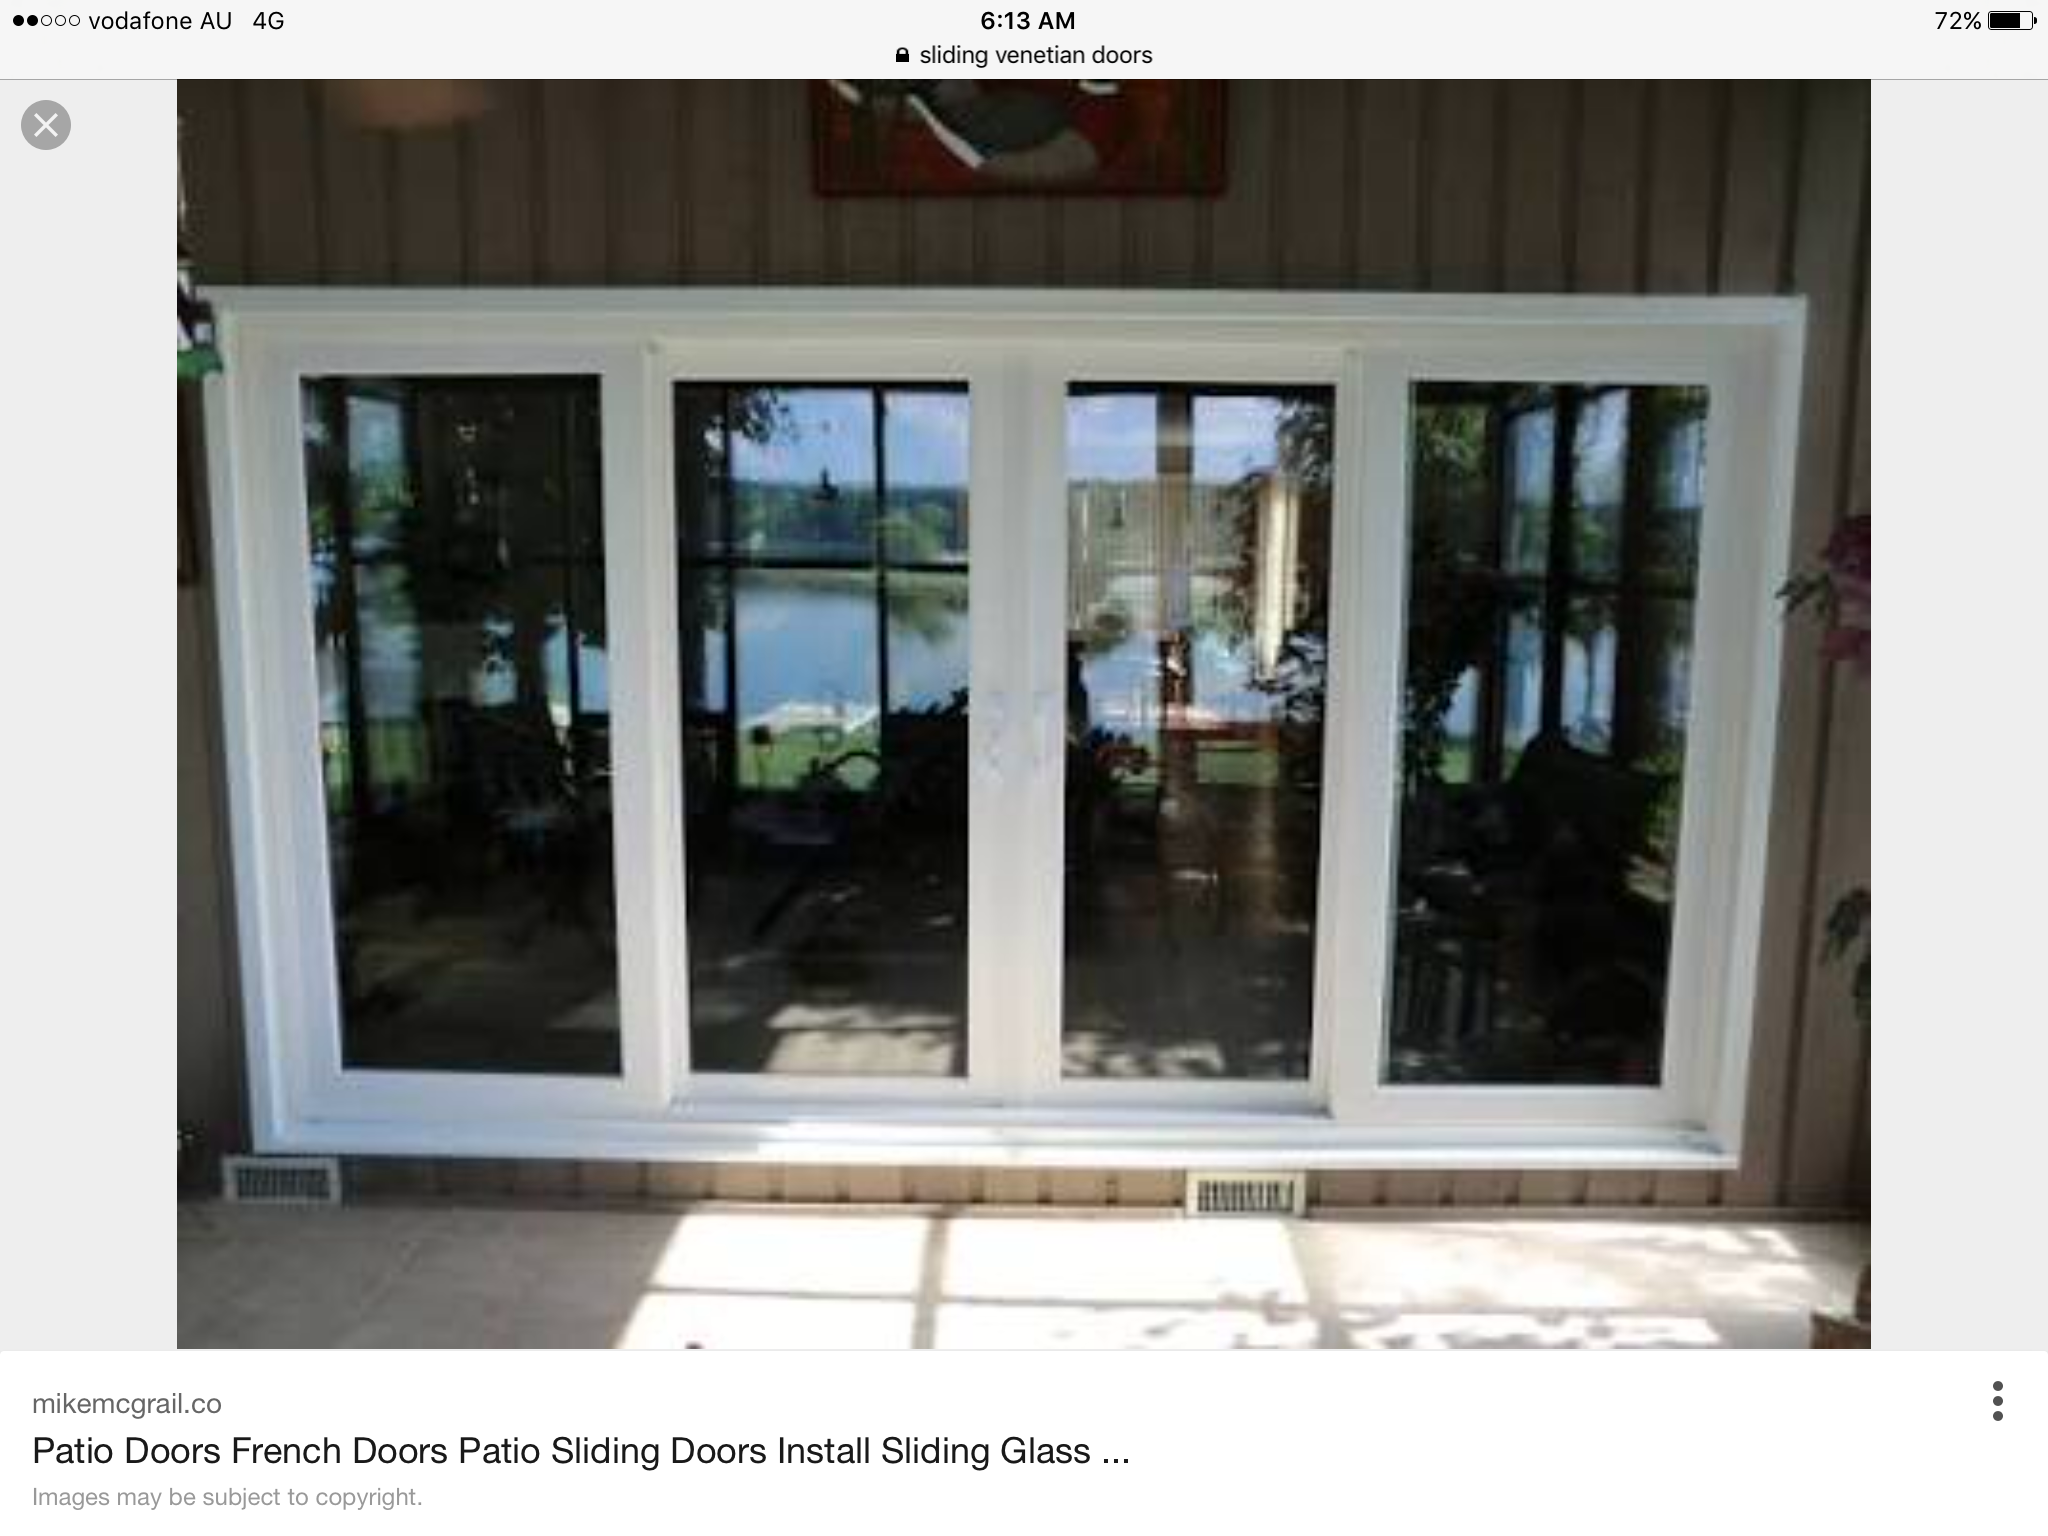 Pin By Mel W On Outdoor Pinterest Patio Doors Doors And Sliding